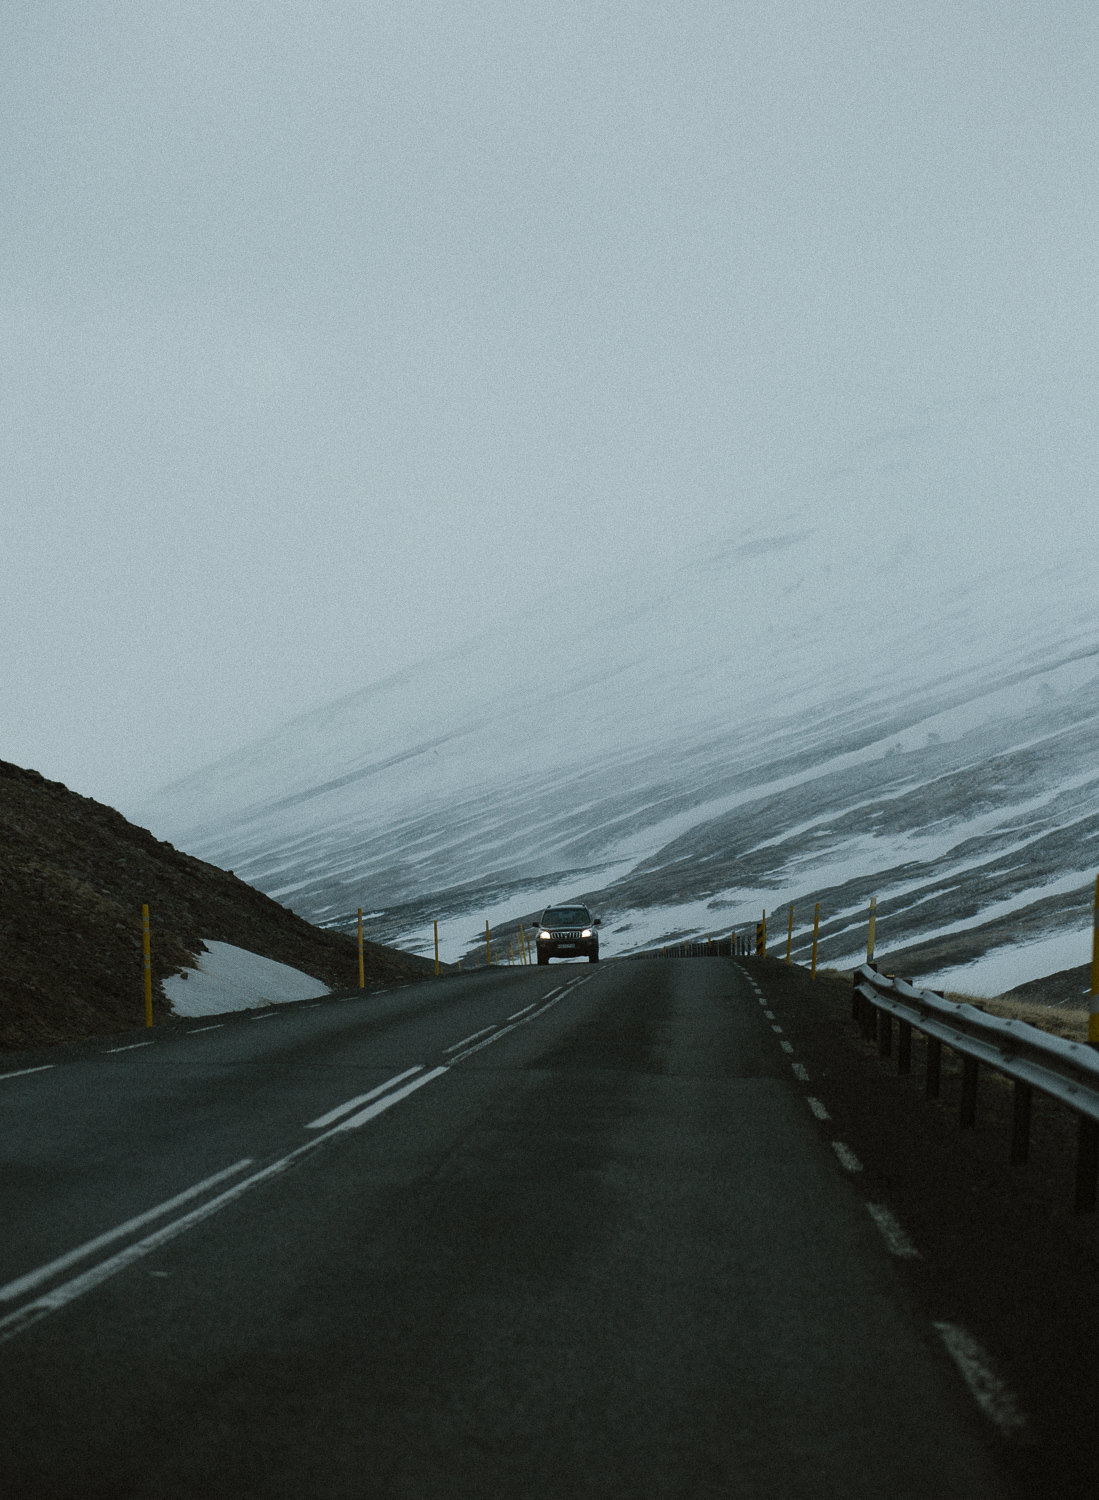 The best iceland road trip pictures-17.jpg